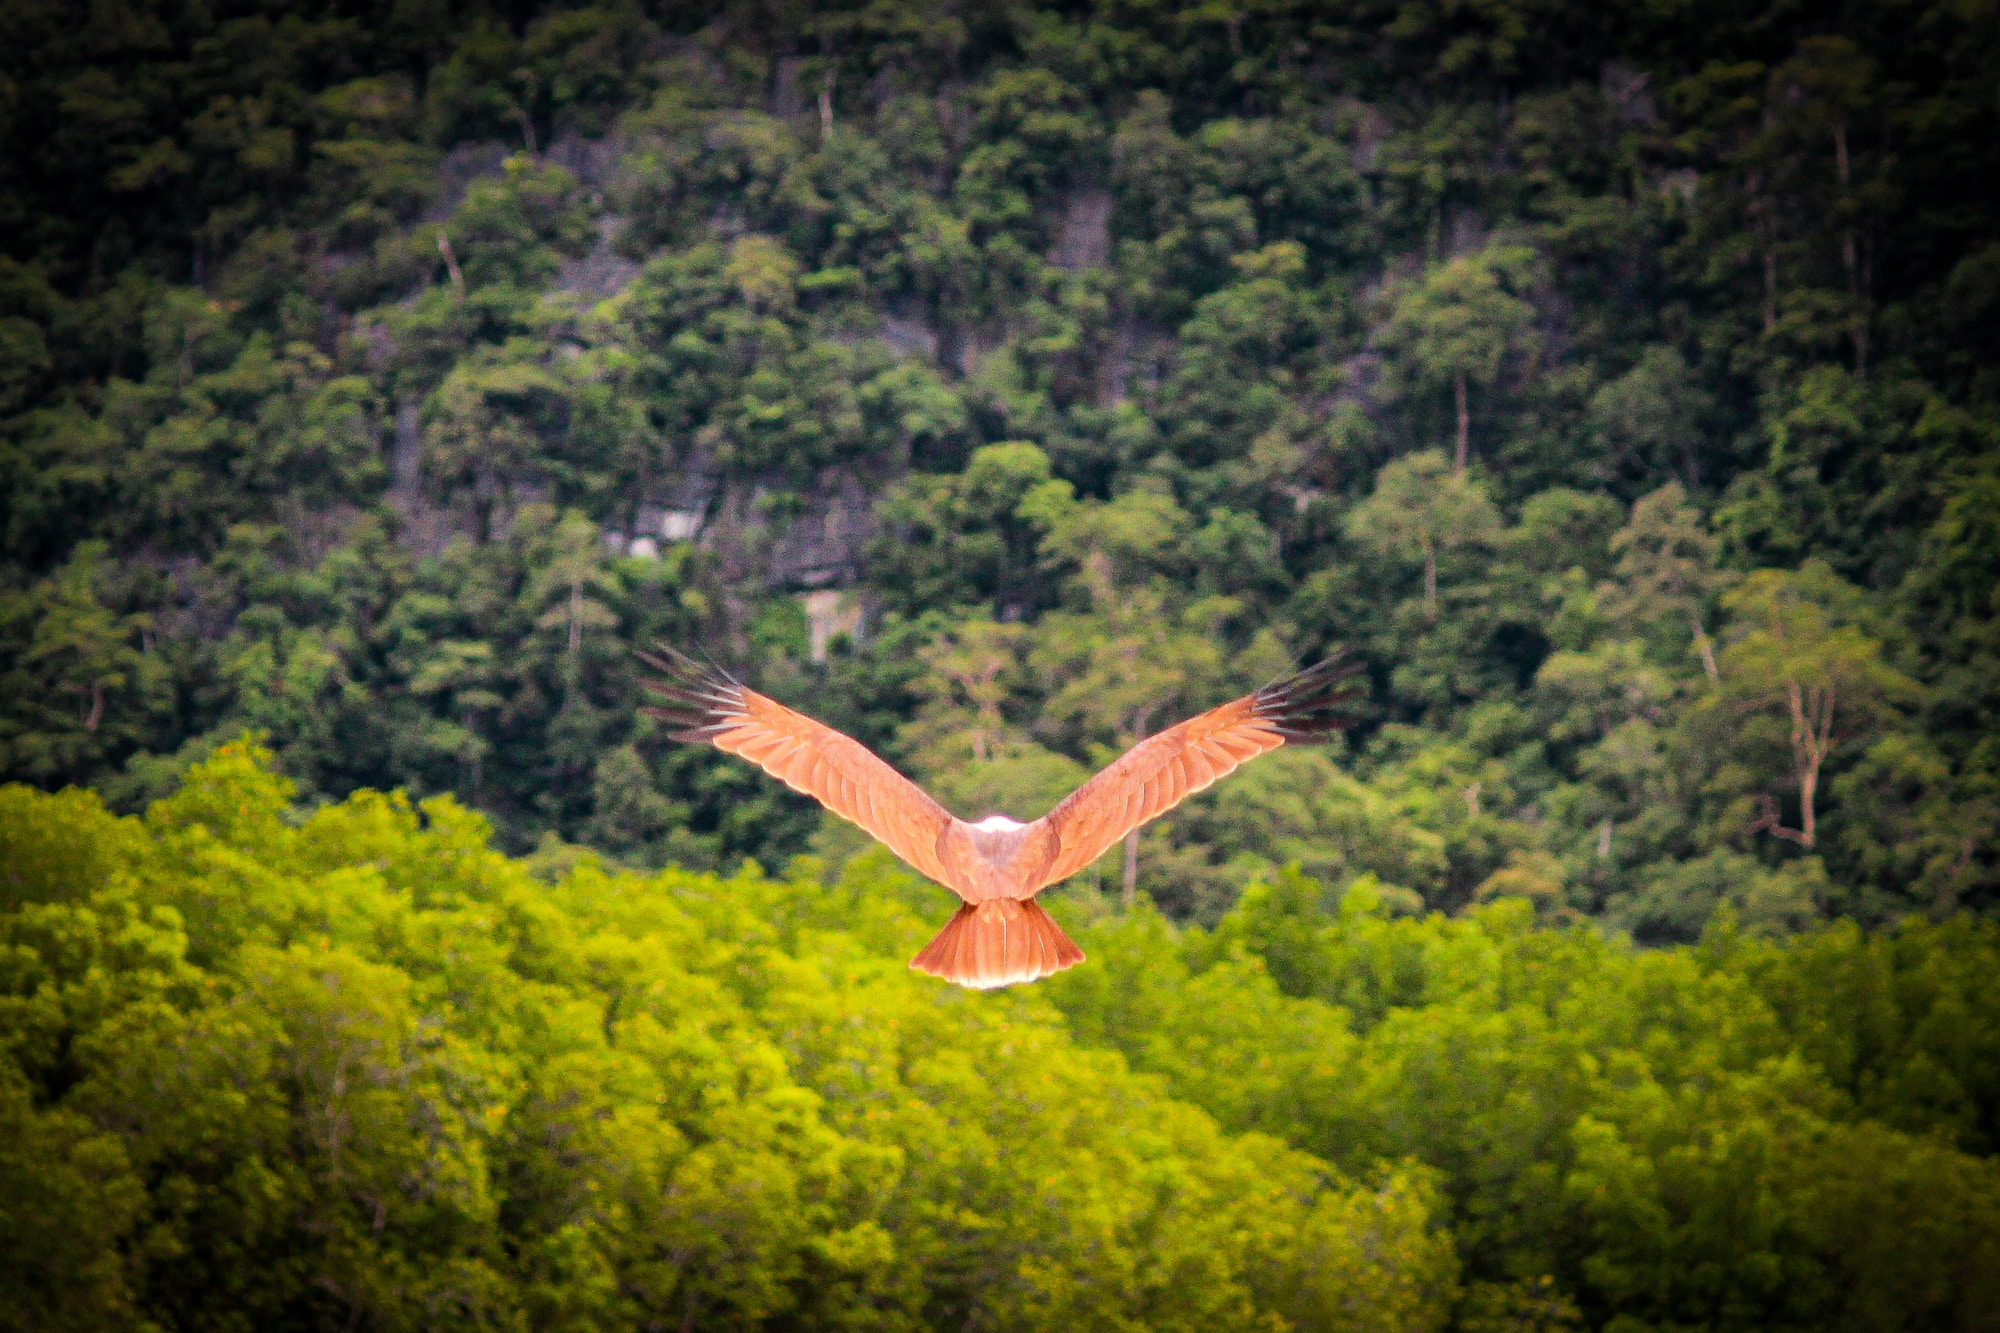 eagle flying over the forest